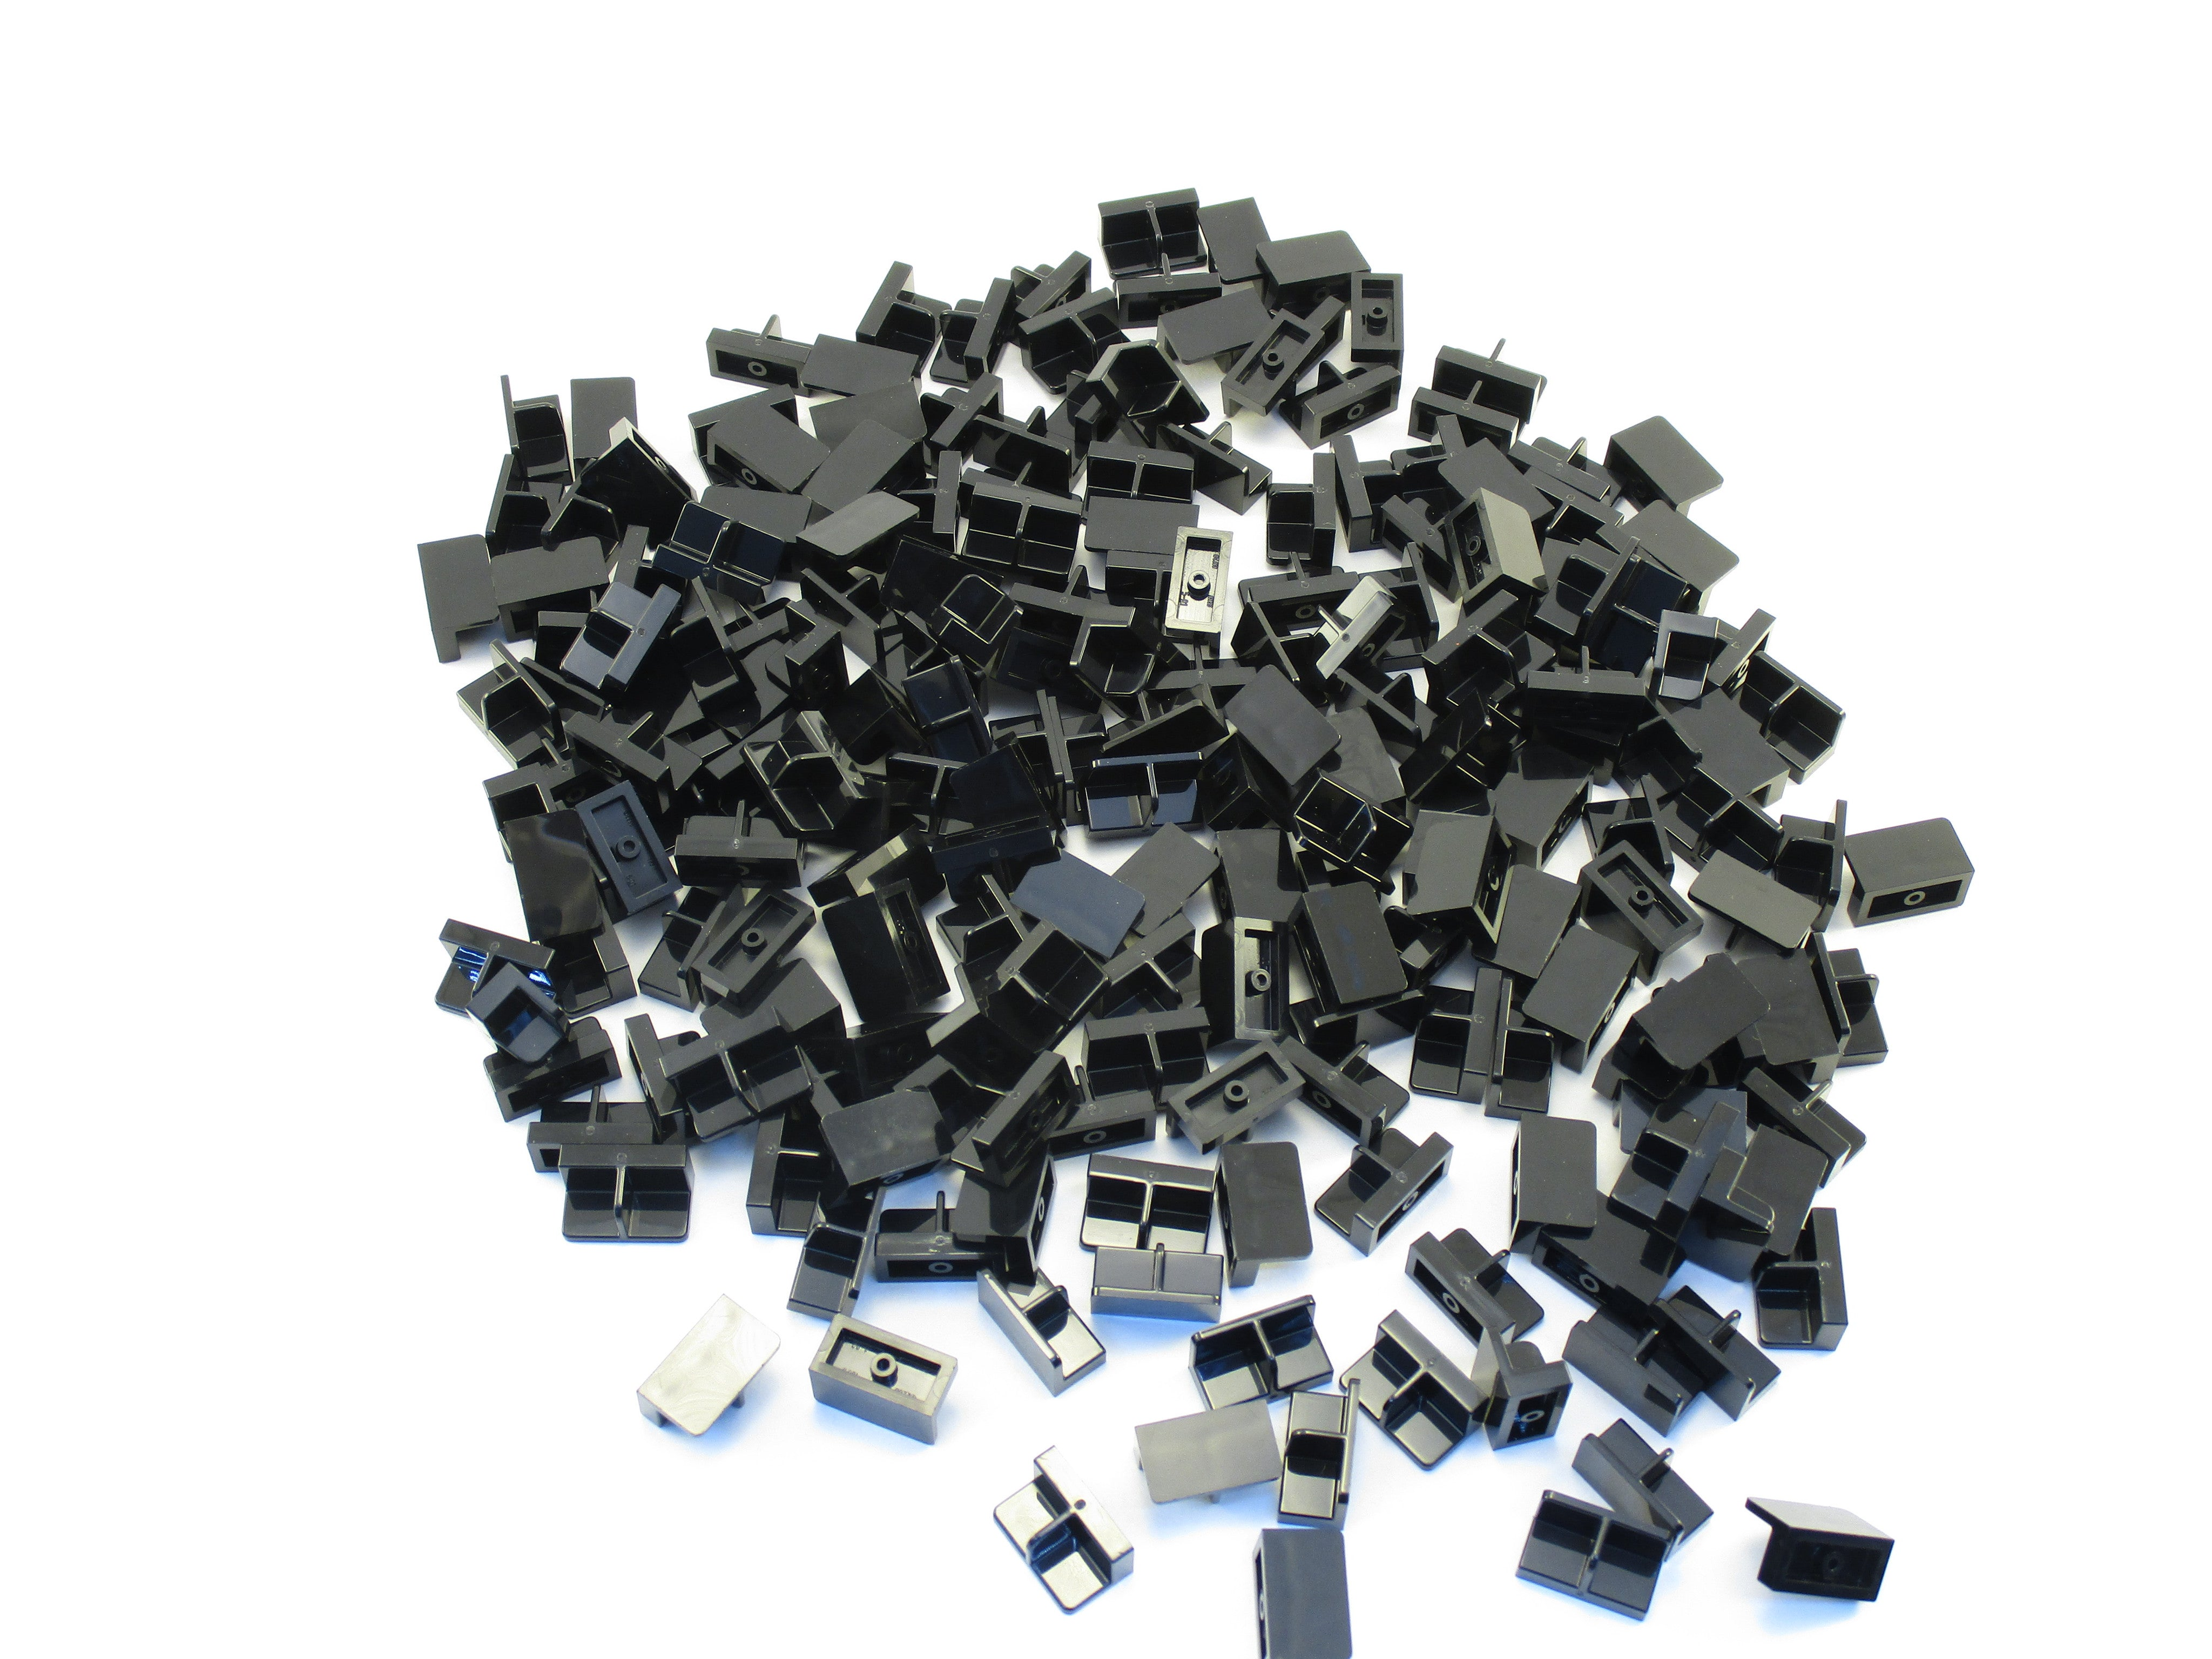 LEGO Black Panel 1x2x1 with Center Divider Lot of 100 Parts Pieces 93095